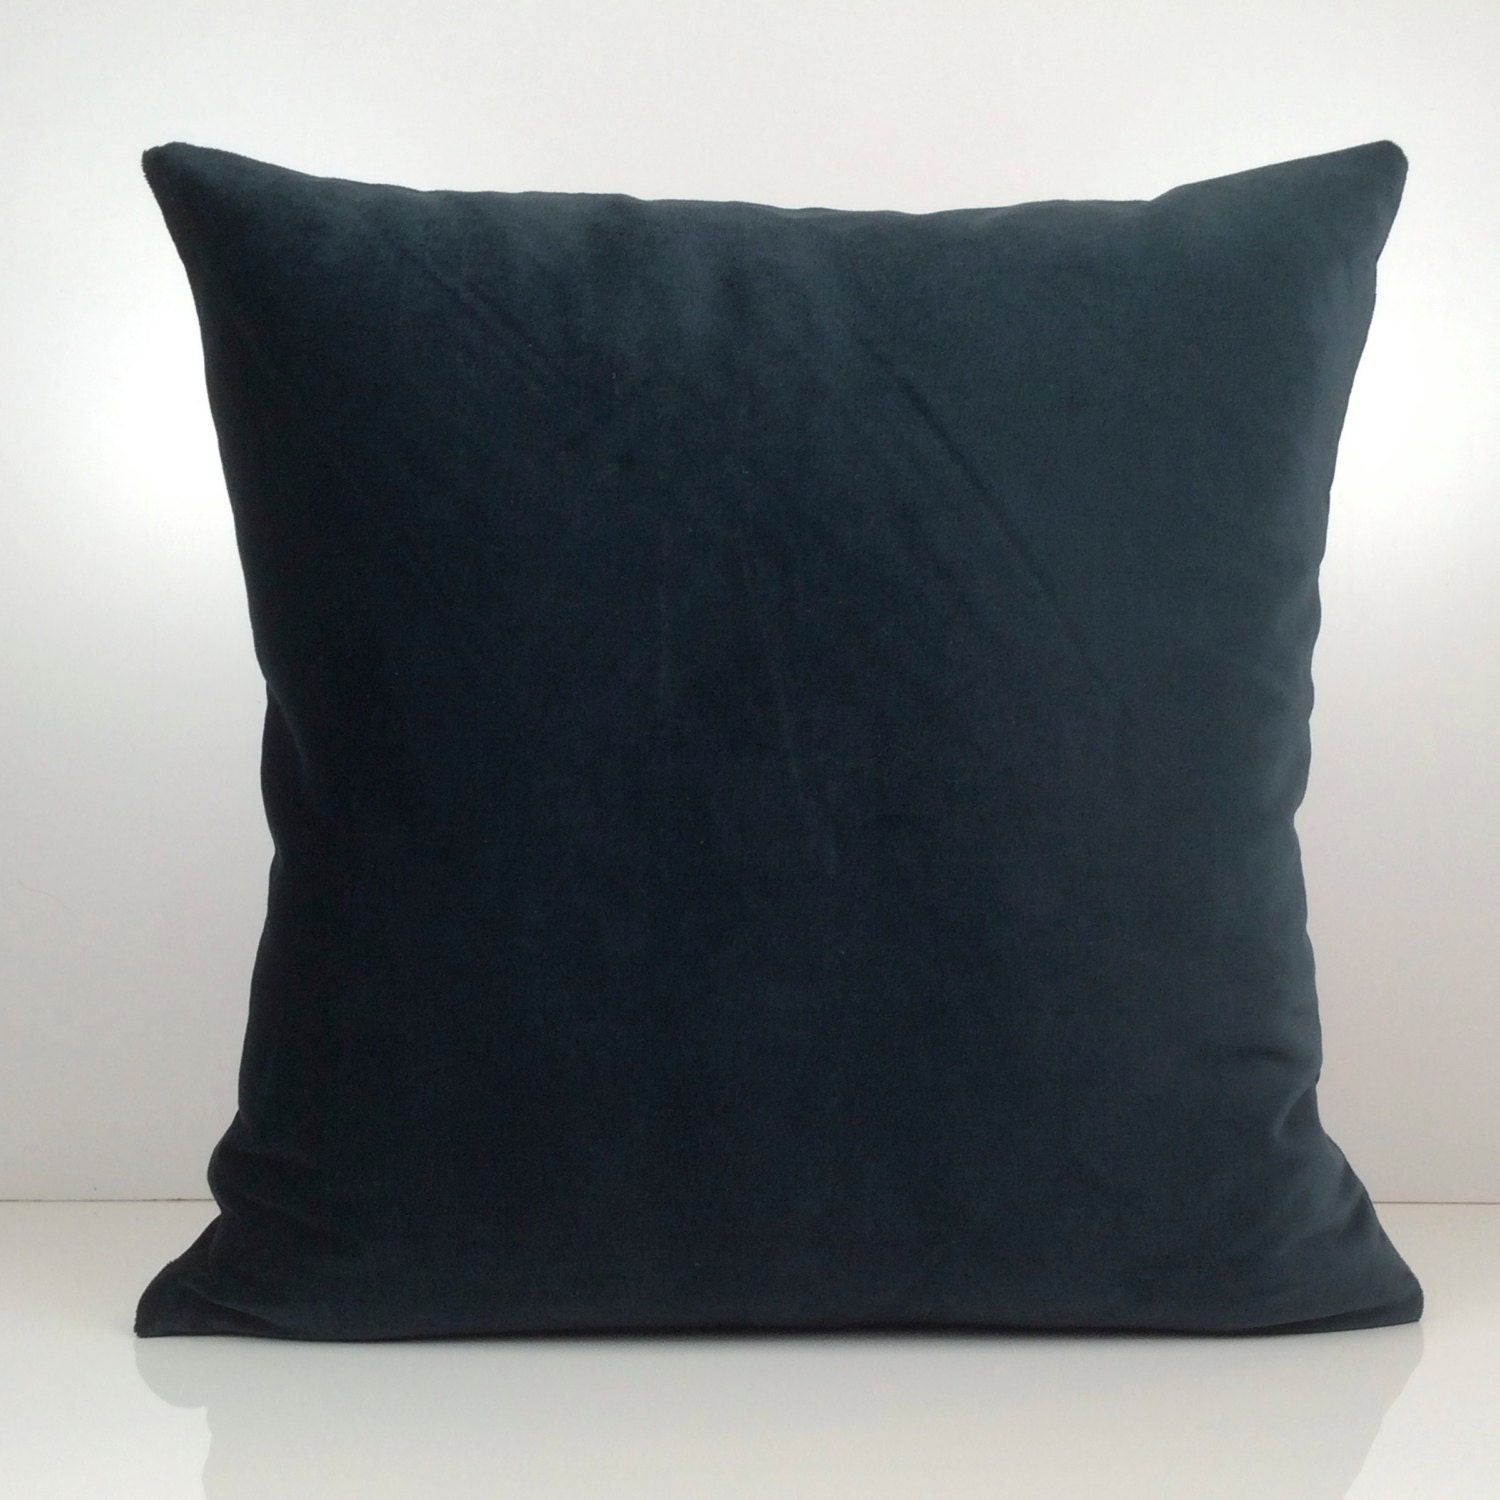 Throw Pillow Covers Teal : Dark Teal Pillow Throw Pillow Cover Decorative Pillow Cover